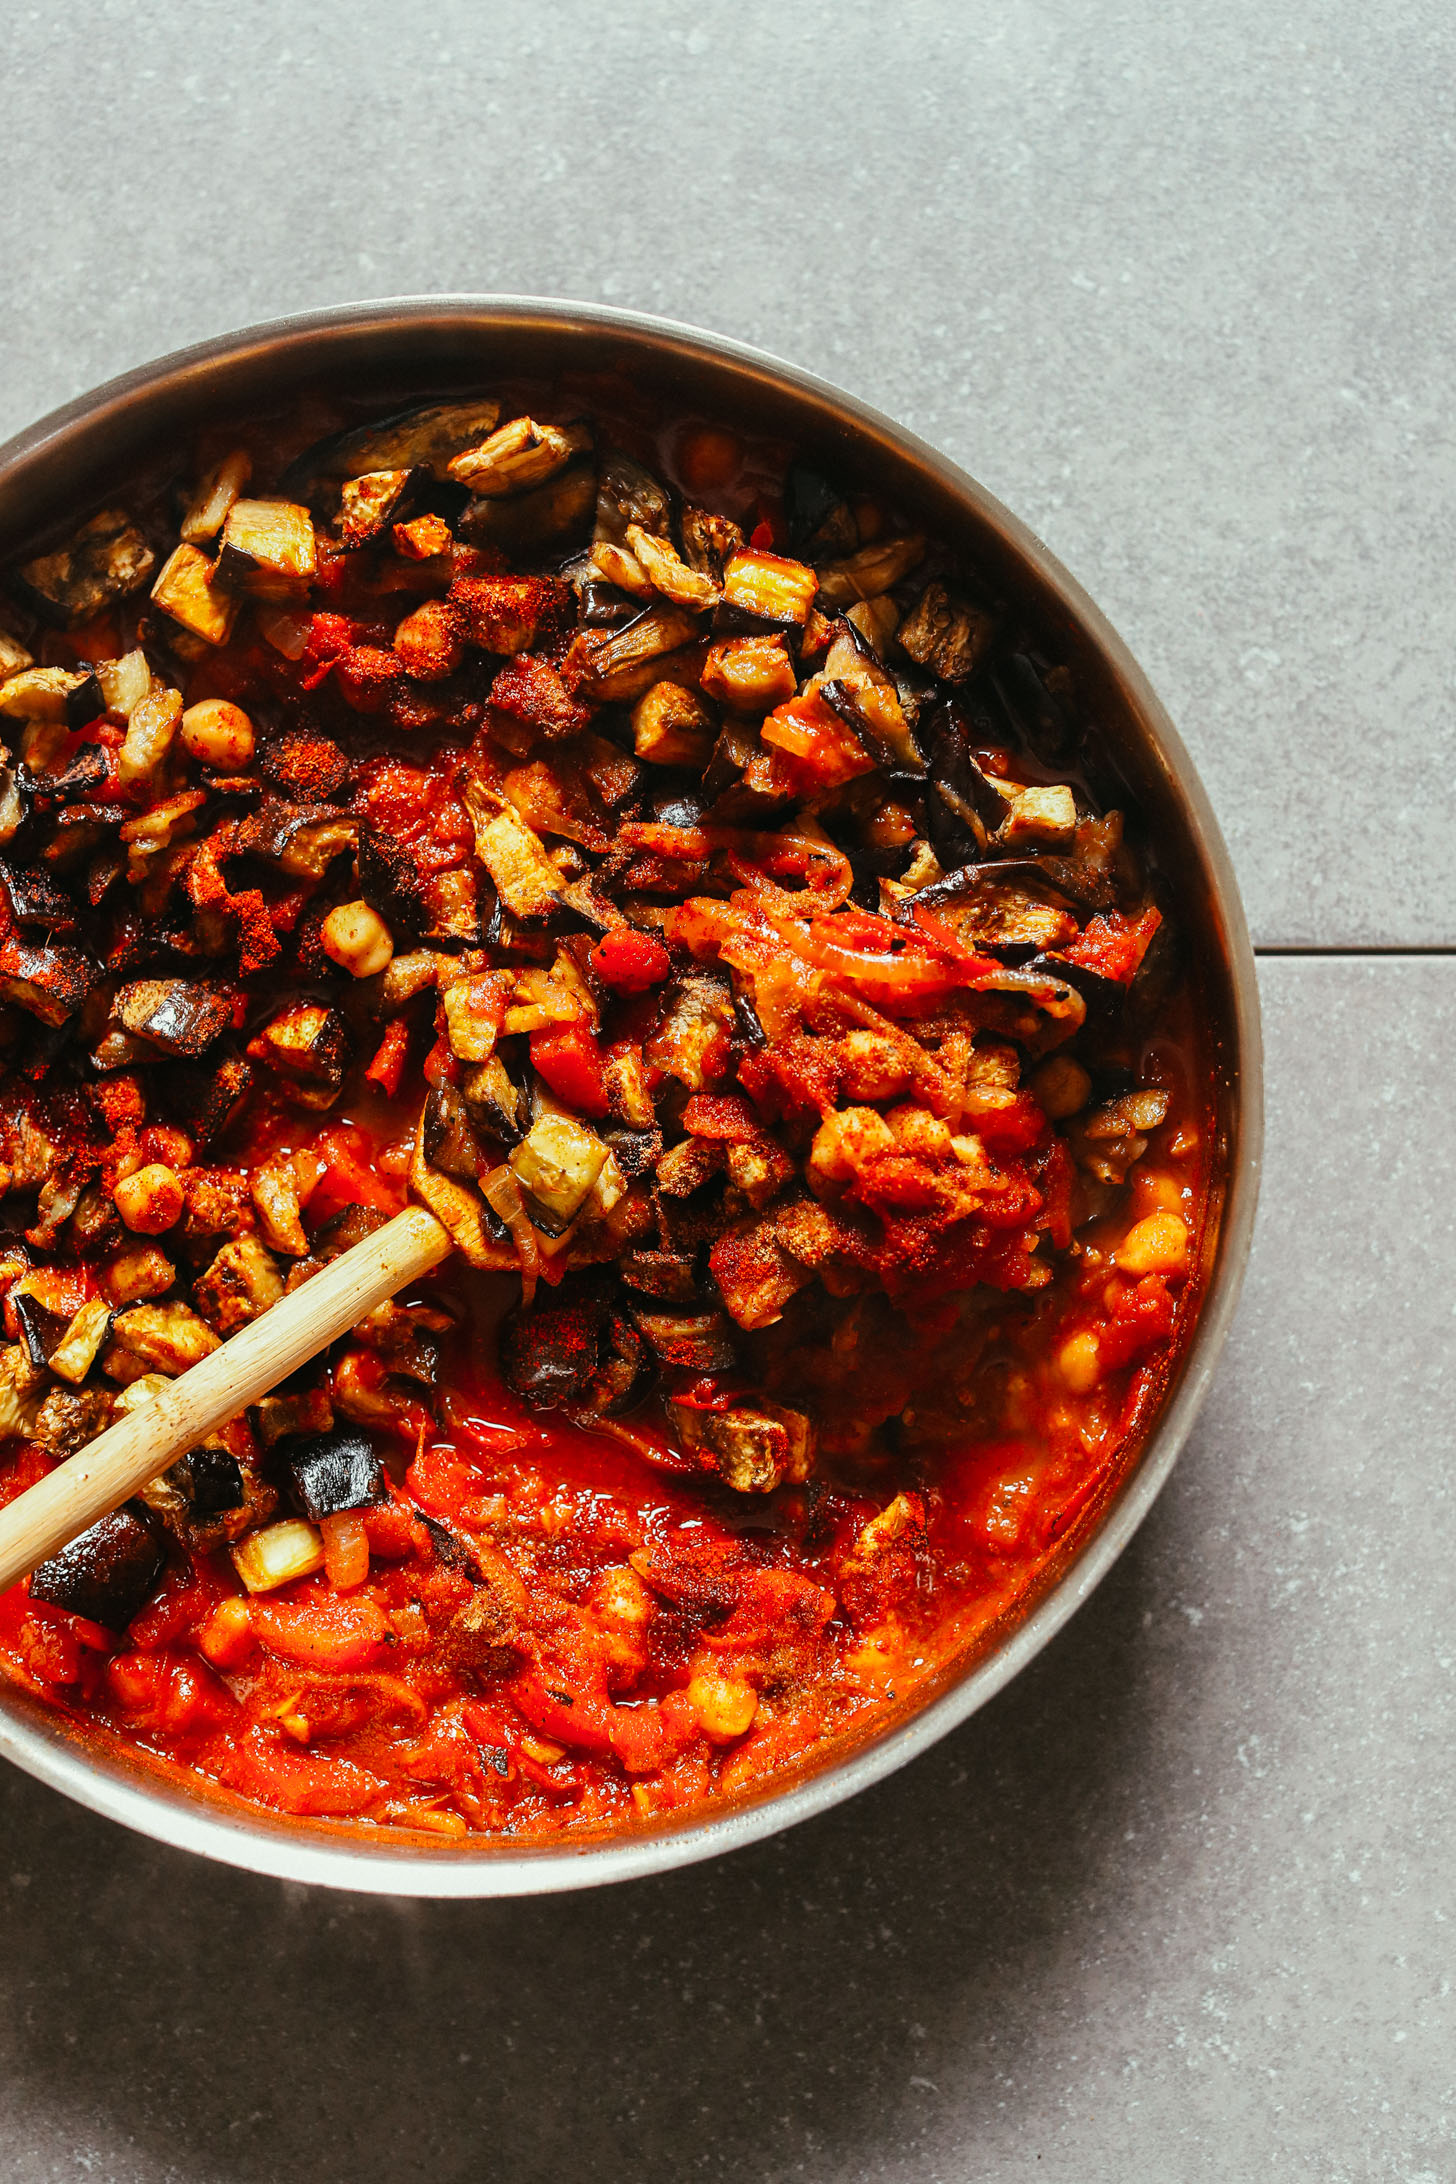 Cooking Moroccan-Spiced Roasted Eggplant & Tomato Stew in a large skillet